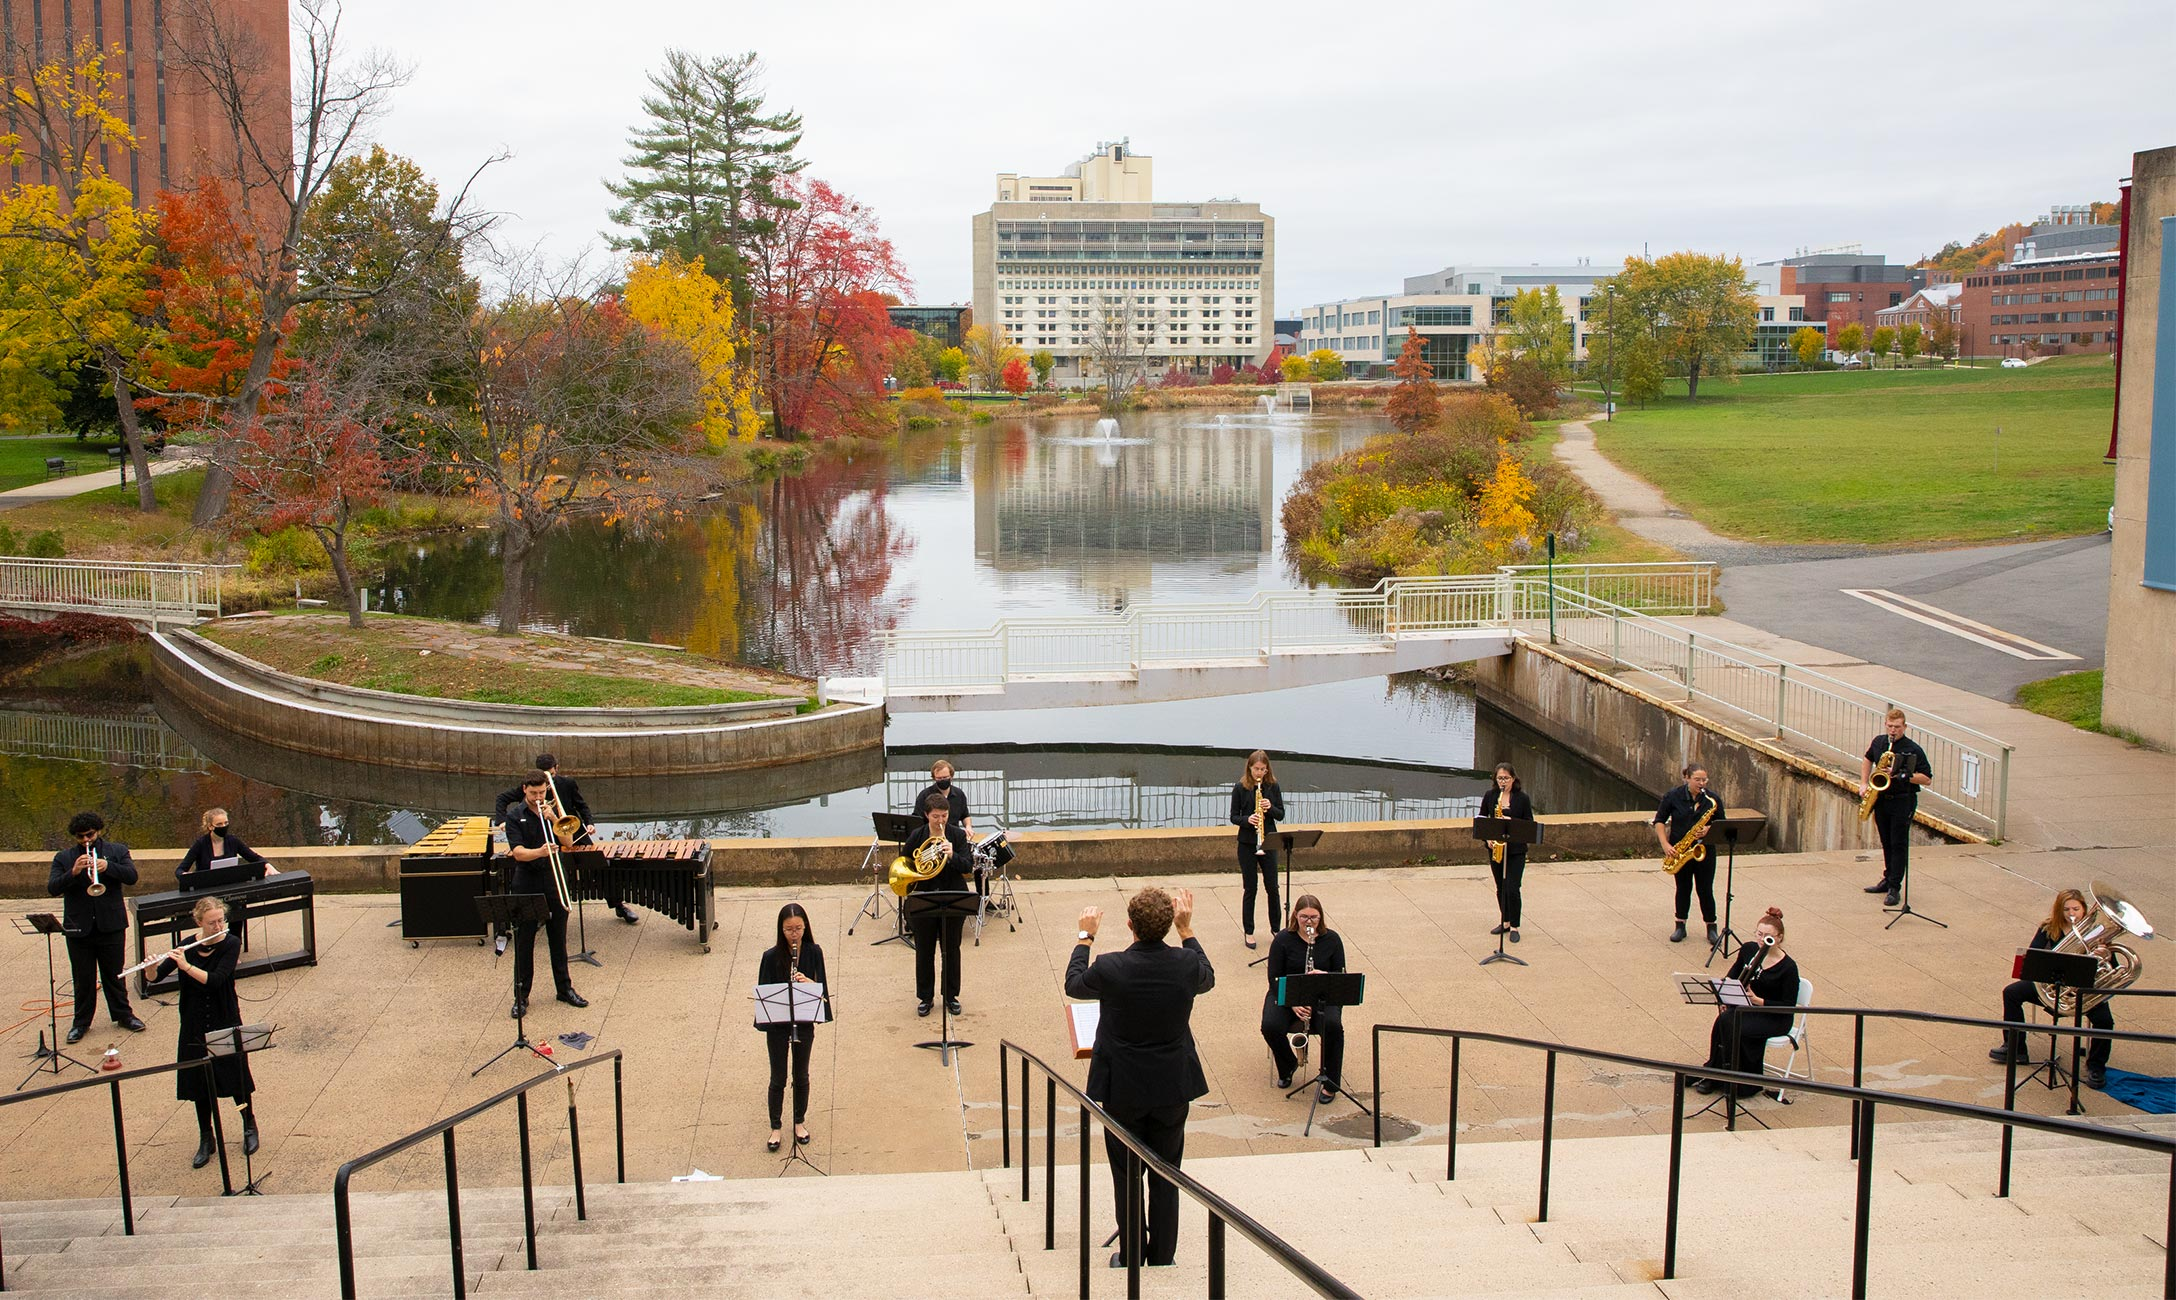 UMass wind ensemble playing on steps of the Fine Arts Center. The campus pond, fall foliage, and other buildings are seen in the background.